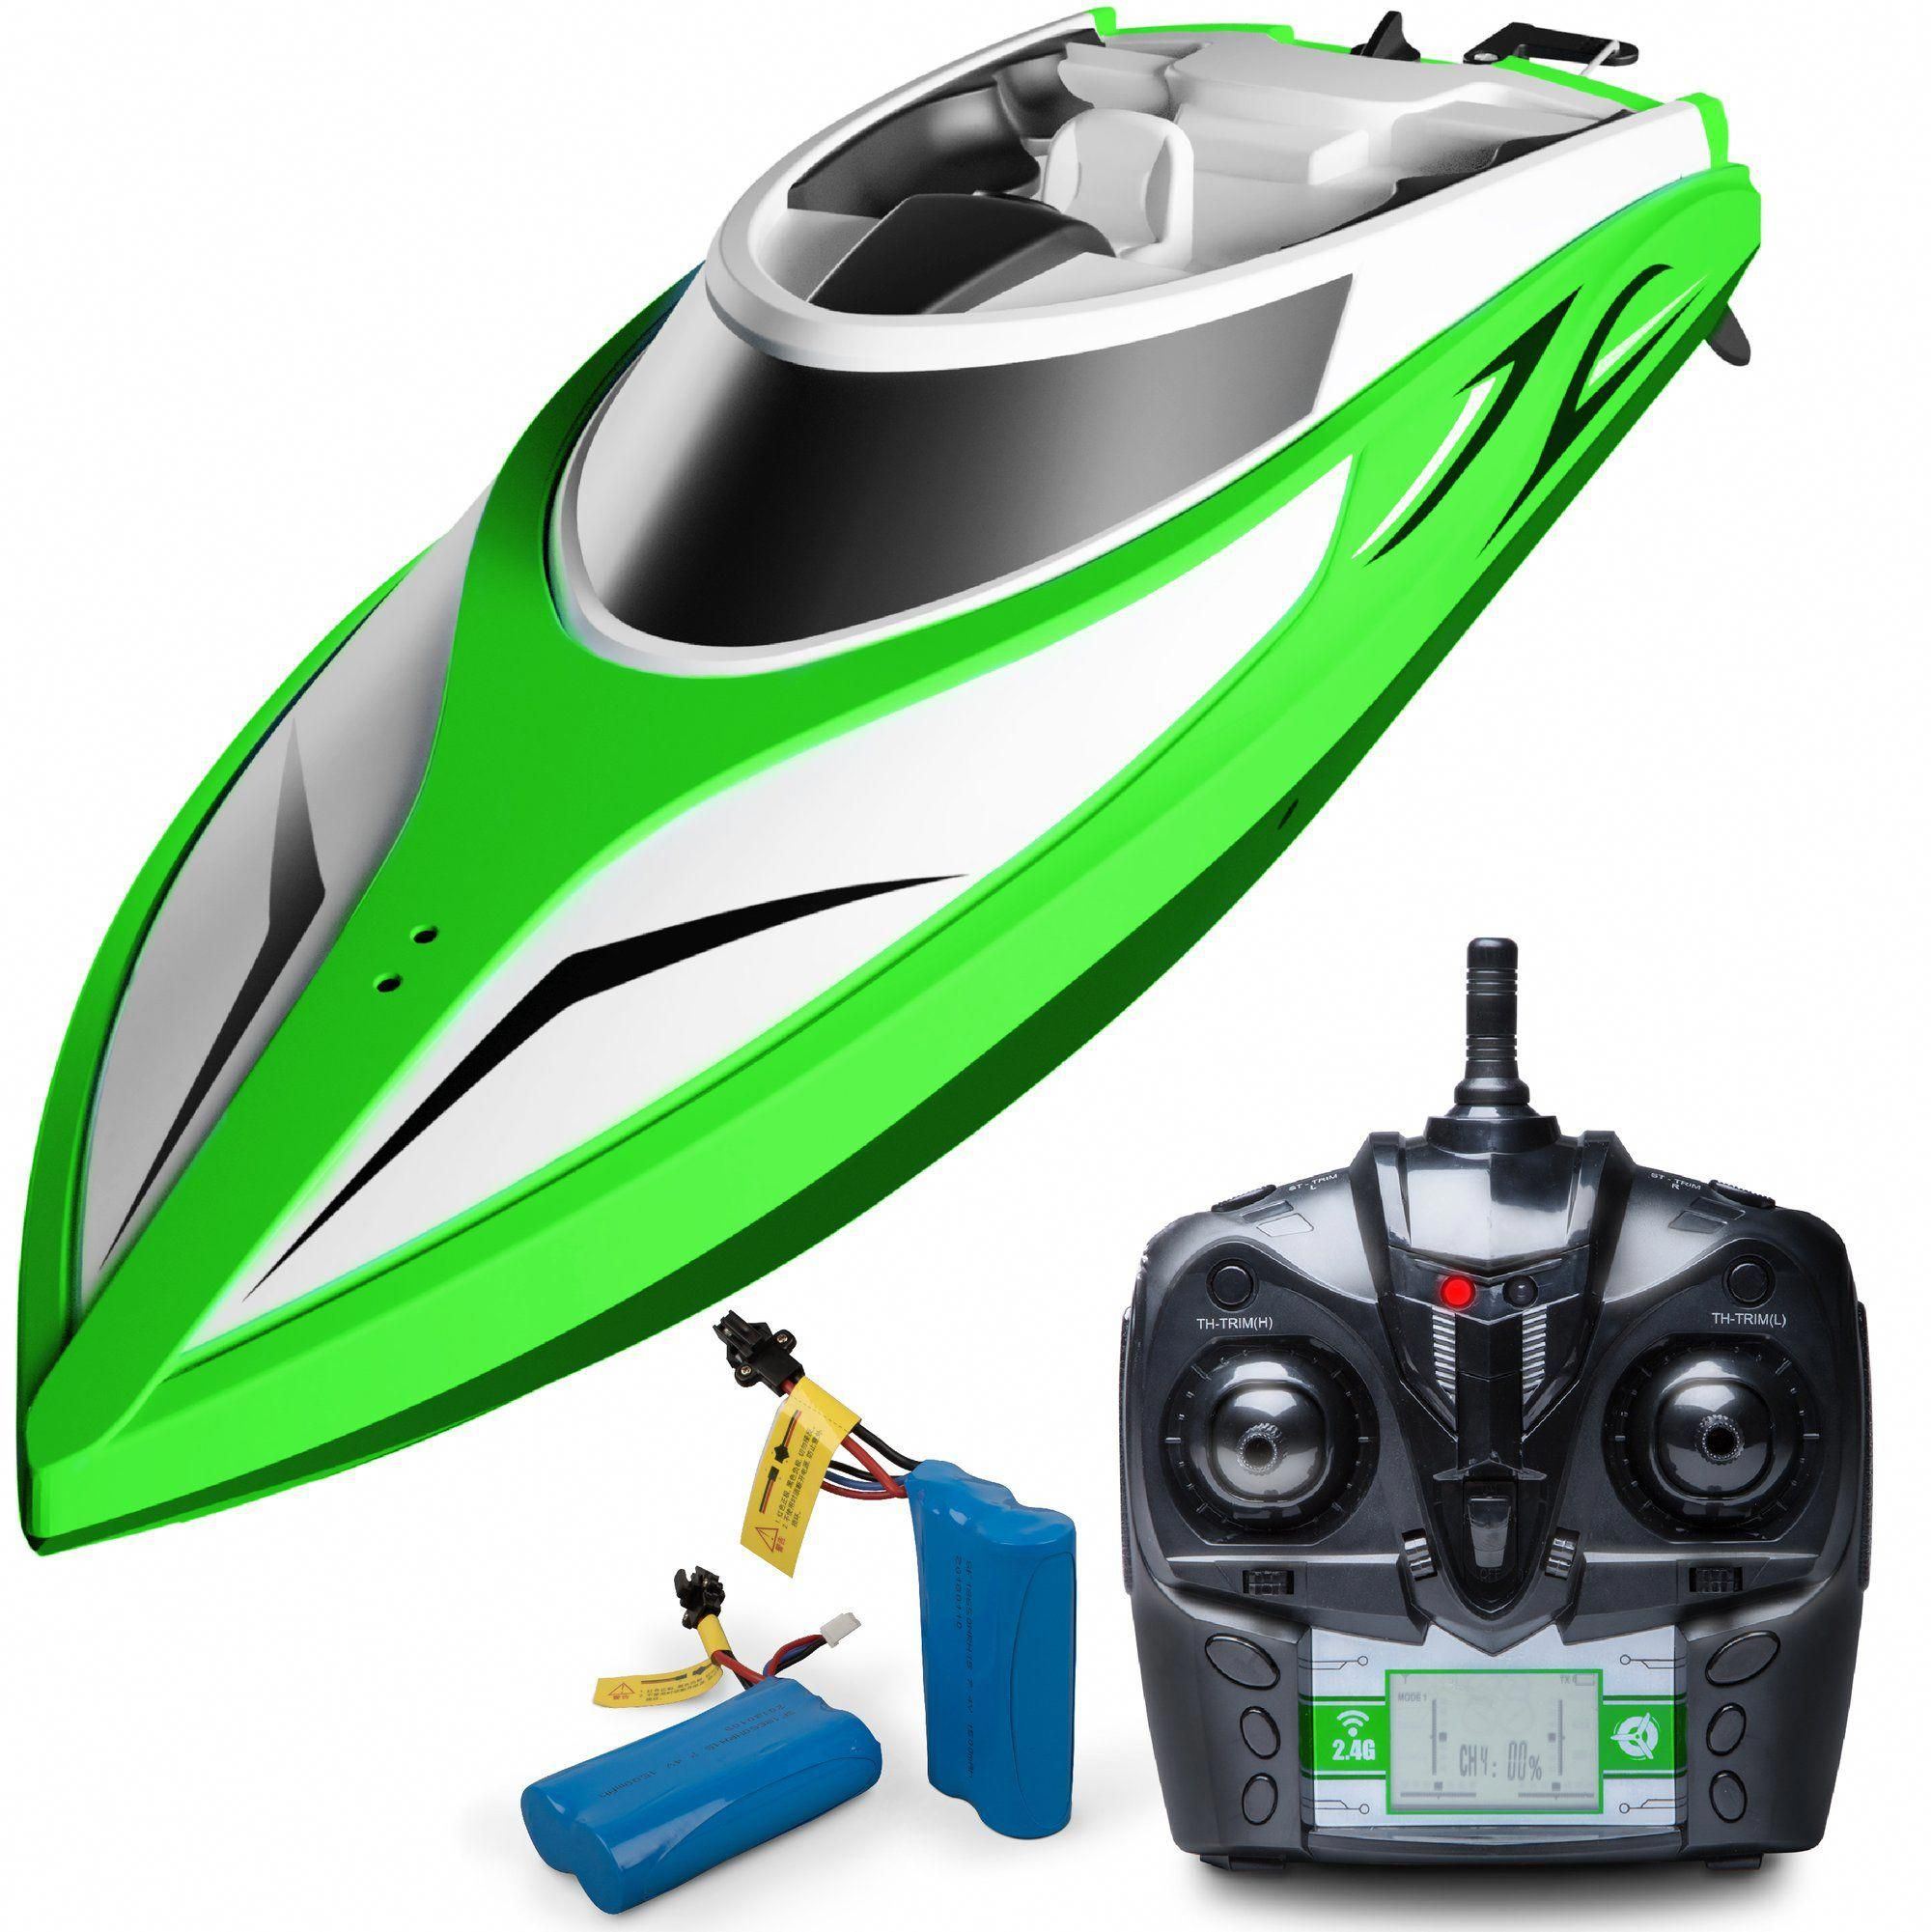 H105 Velocity Fast Remote Control Boat for Pools and Lakes